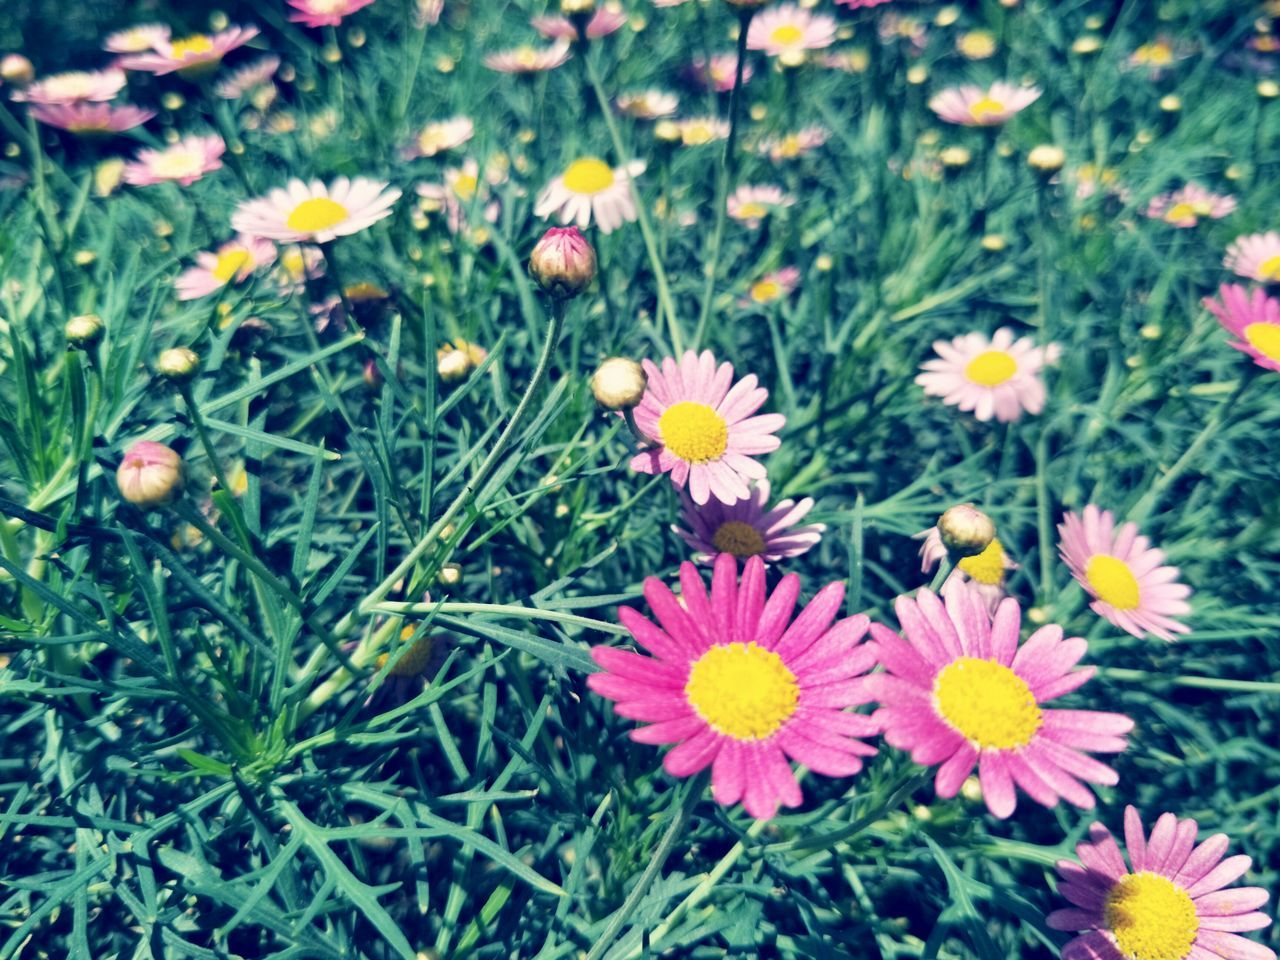 Flower Growth Beauty In Nature Nature Fragility Petal Plant Freshness Flower Head Blooming Day Outdoors No People Close-up For Sale Buy Floral Why pink?